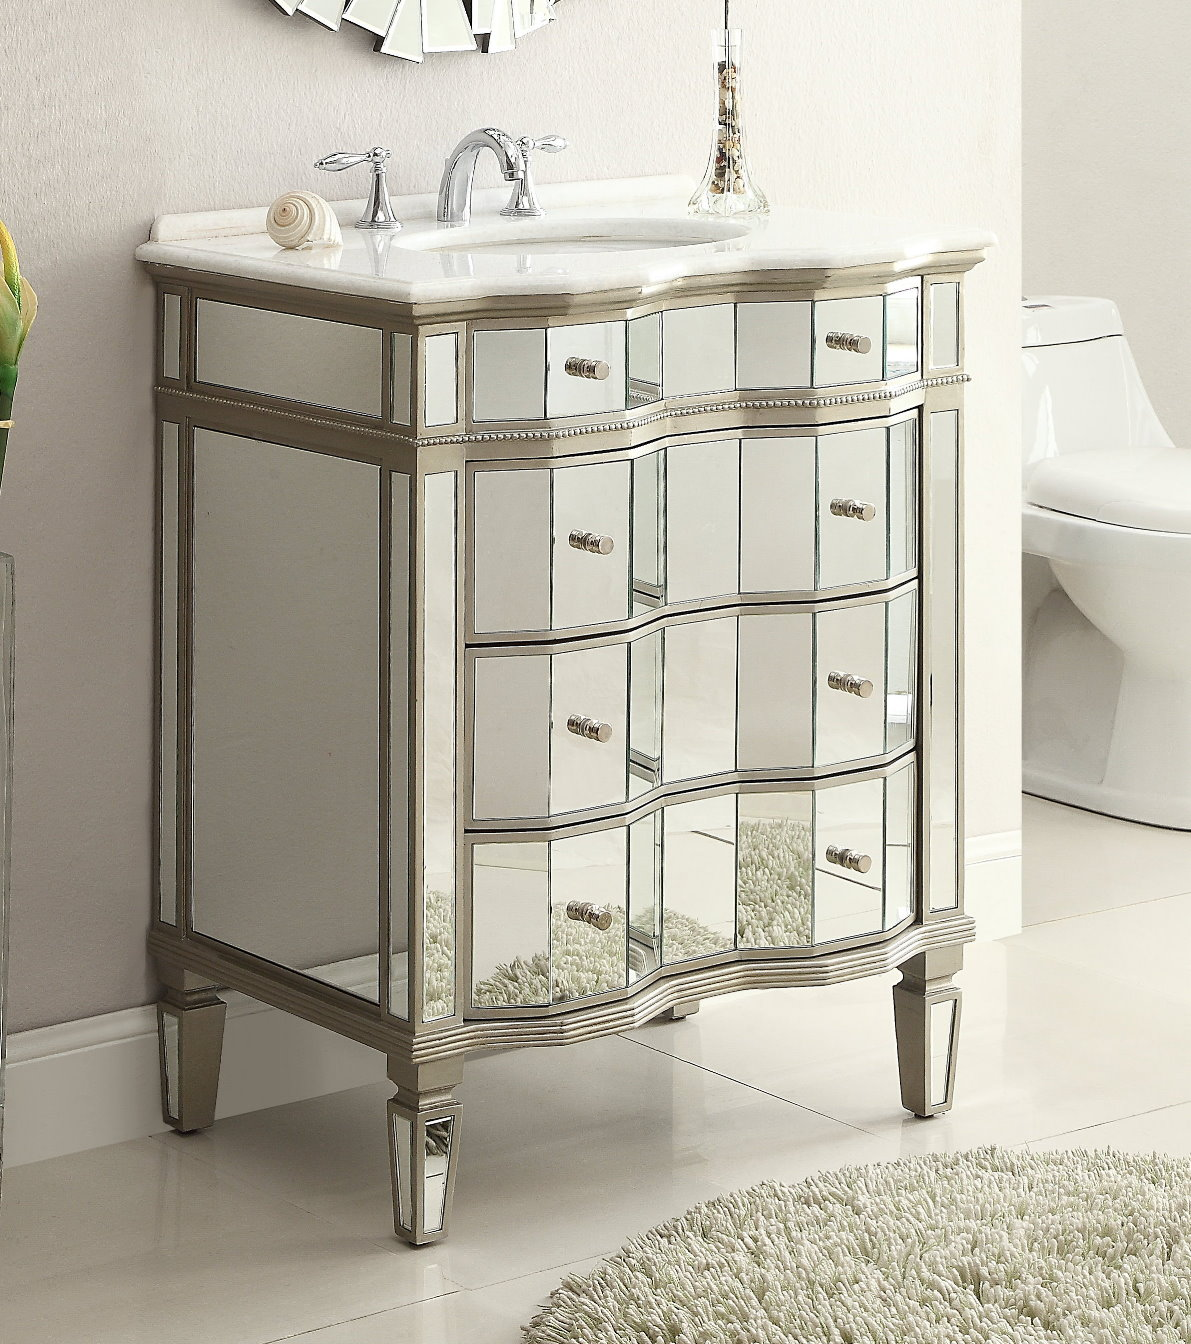 Cabinet Mirror Adelina 30 Inch Mirrored Bath Vanity